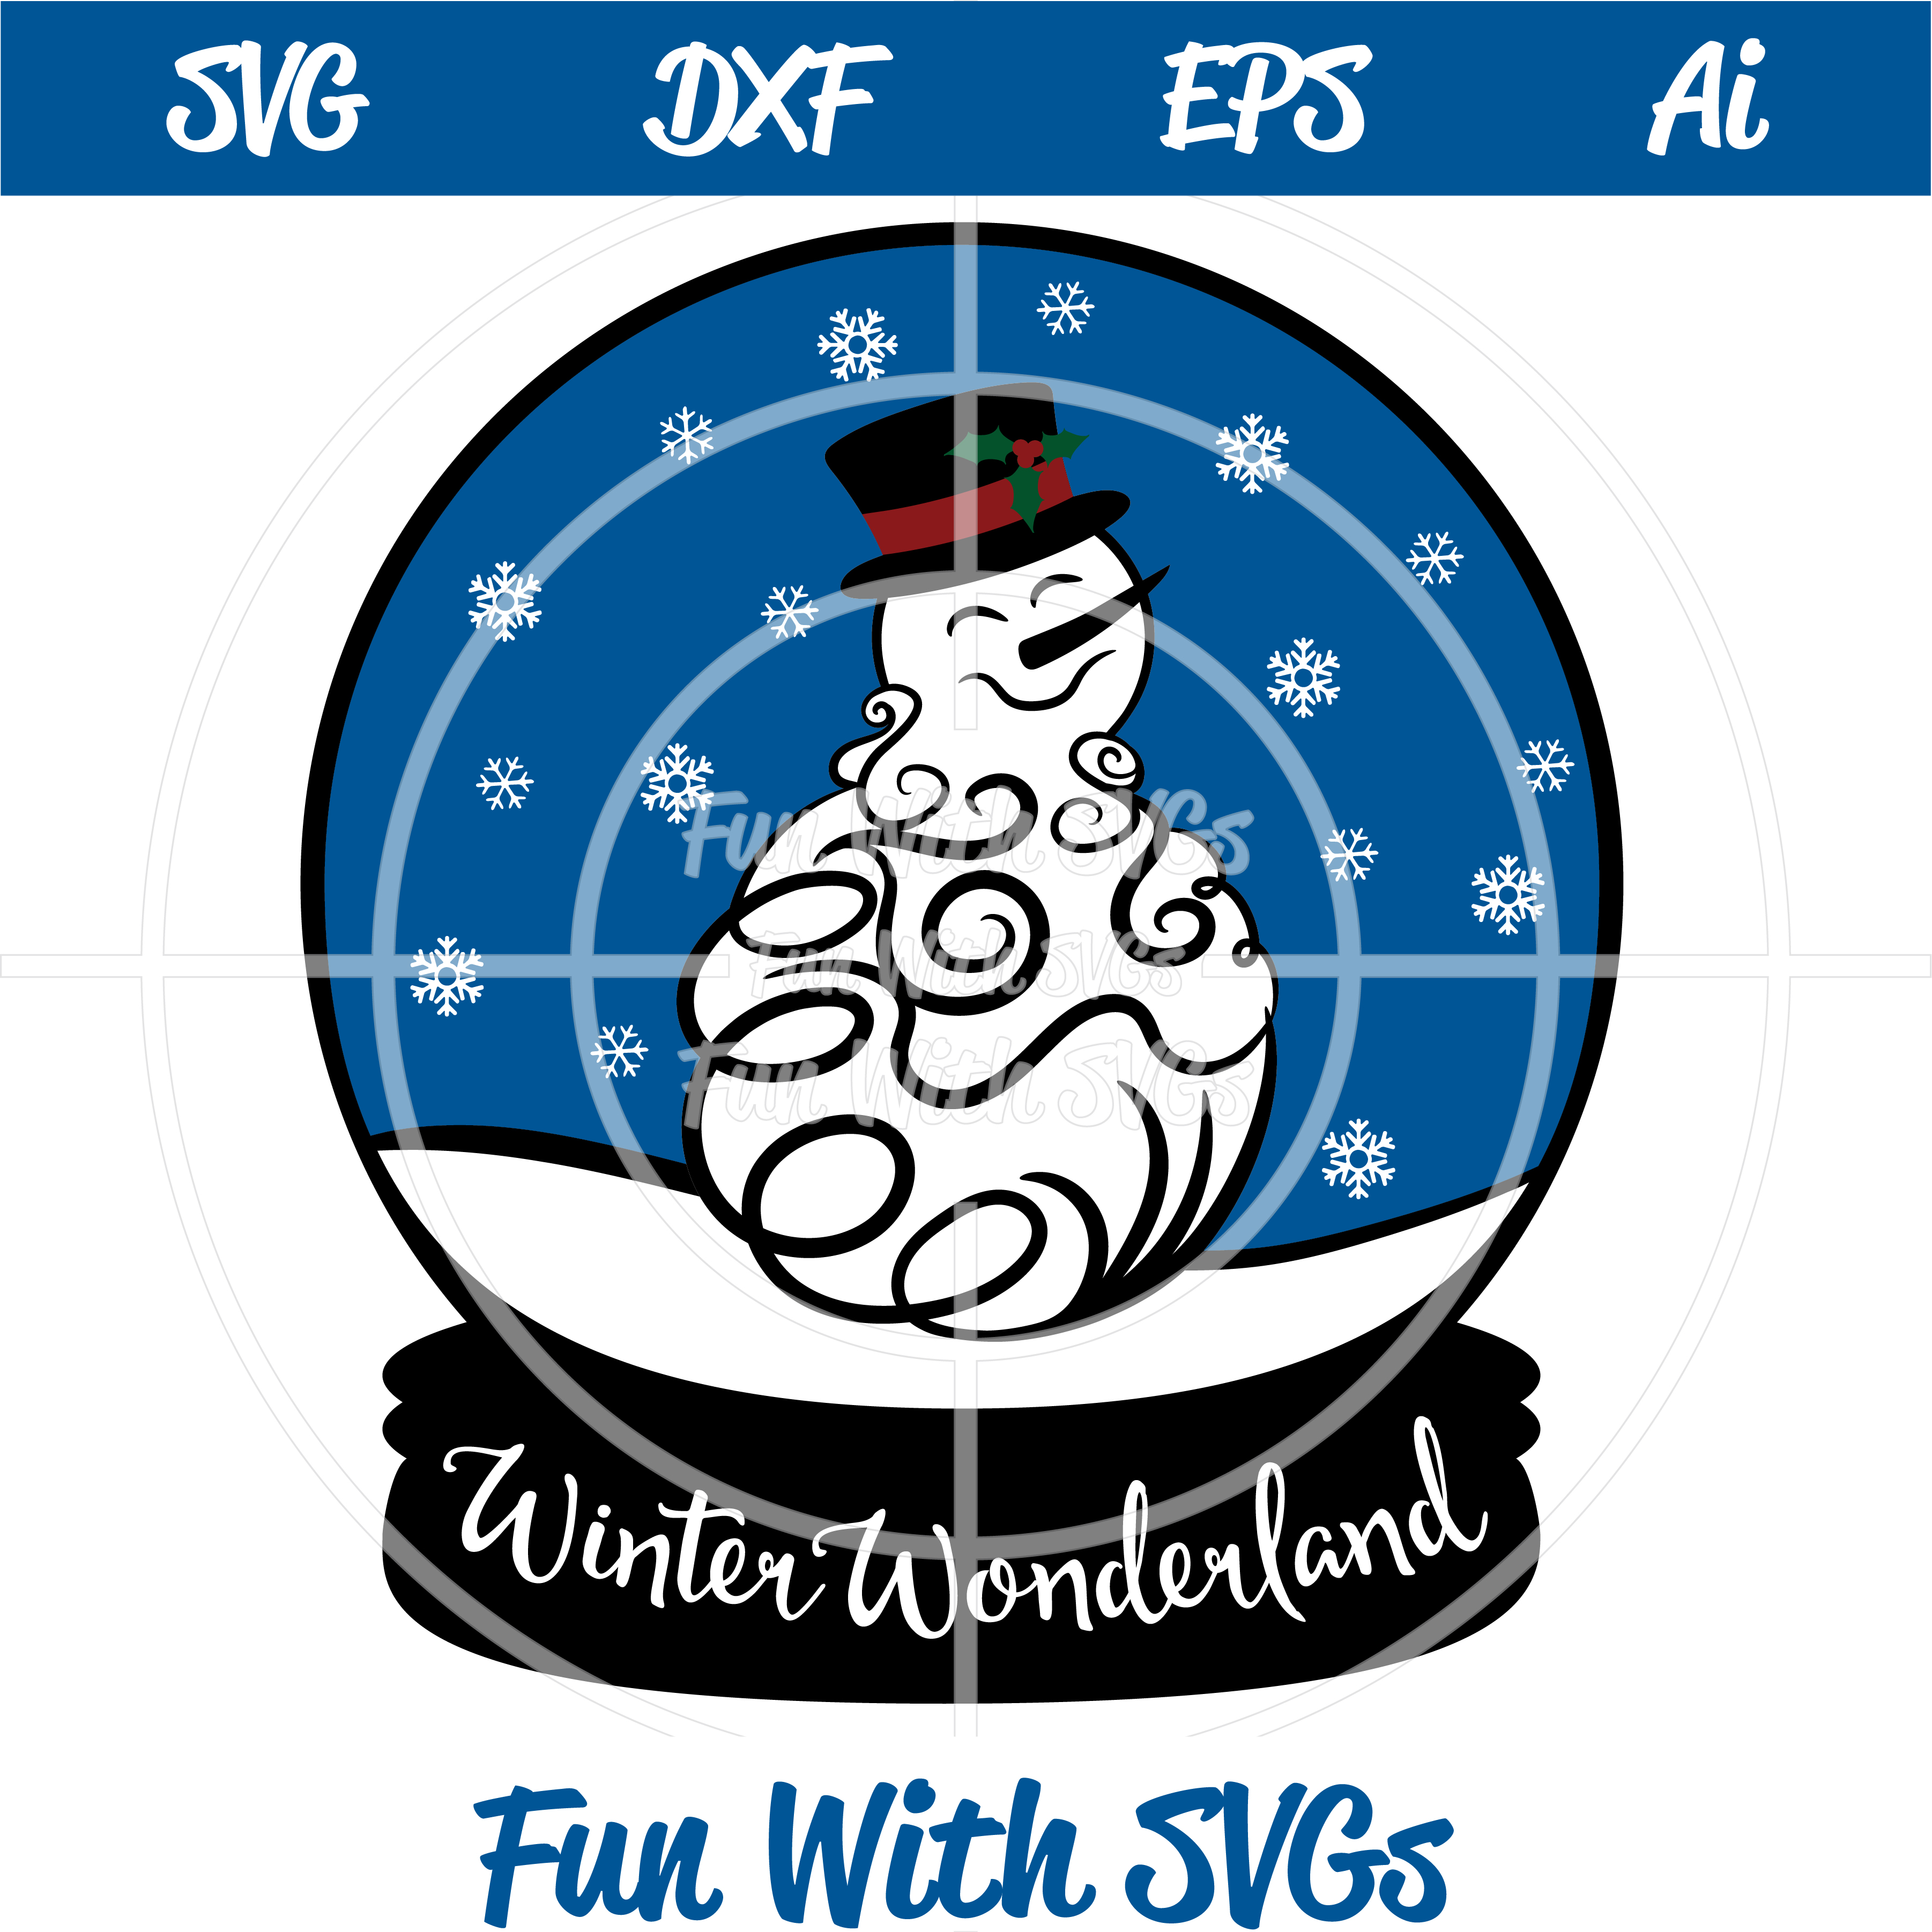 Snowglobe Snowman Svg Cutting File Fun With Svgs Winter Wonderland